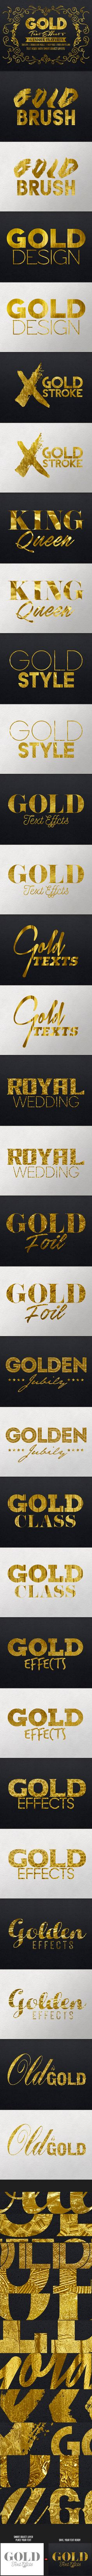 Gold Text Effects for Photoshop. Download: http://graphicriver.net/item/gold-text-effects/14484610?ref=ksioks